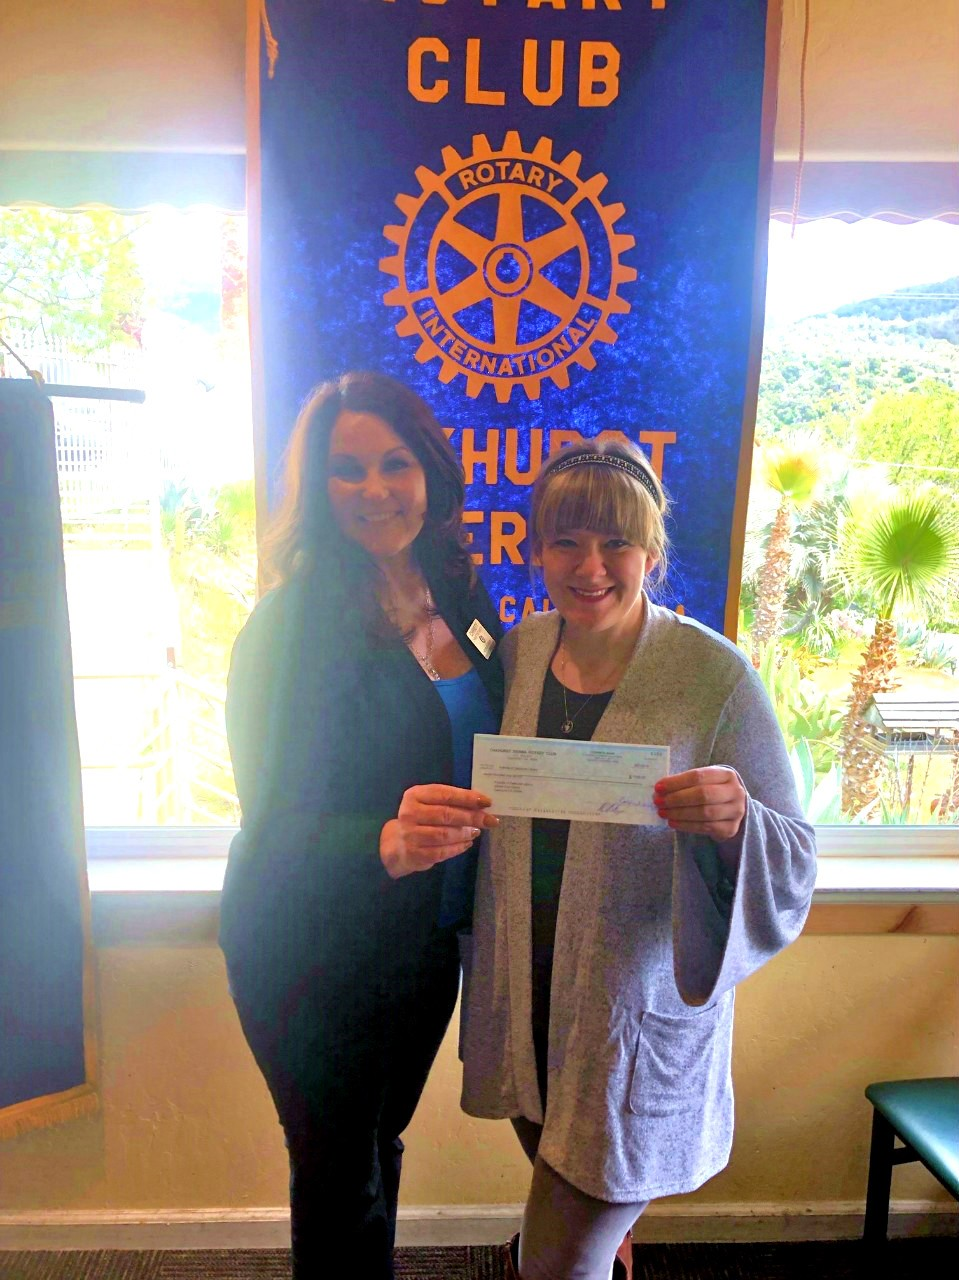 SIERRA ROTARY PRESIDENT-ELECT CHRISTY SMITH PRESENTS SUMMER ART SPONSORSHIP CHECK FOR $700 TO LEILANI CUMMINGS OF OAKHURST BRANCH LIBRARY